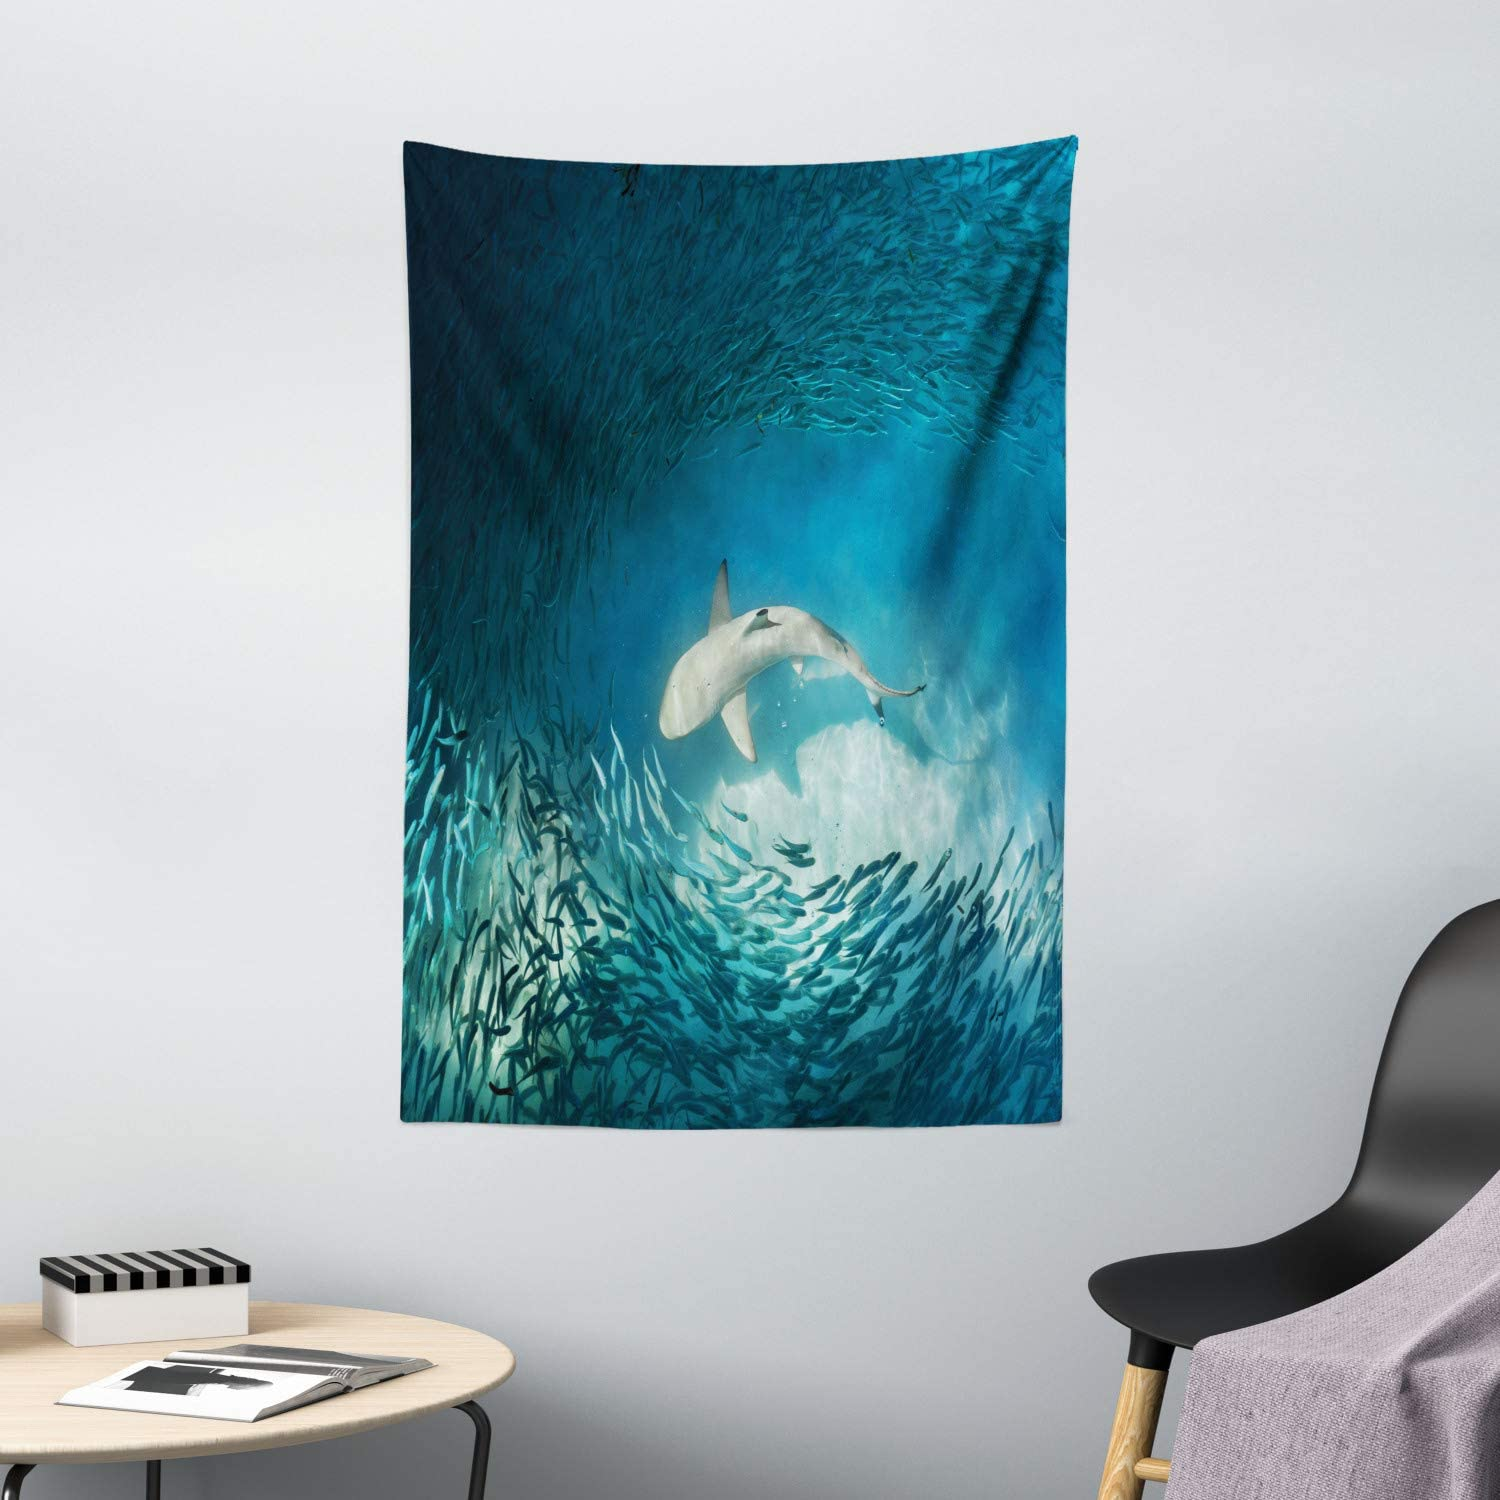 "Ambesonne Sea Animals Tapestry, Shark and Small Fish Ocean Wilderness Waterscape Wildlife Nature Theme Picture, Wall Hanging for Bedroom Living Room Dorm Decor, 40"" X 60"", Teal Beige"